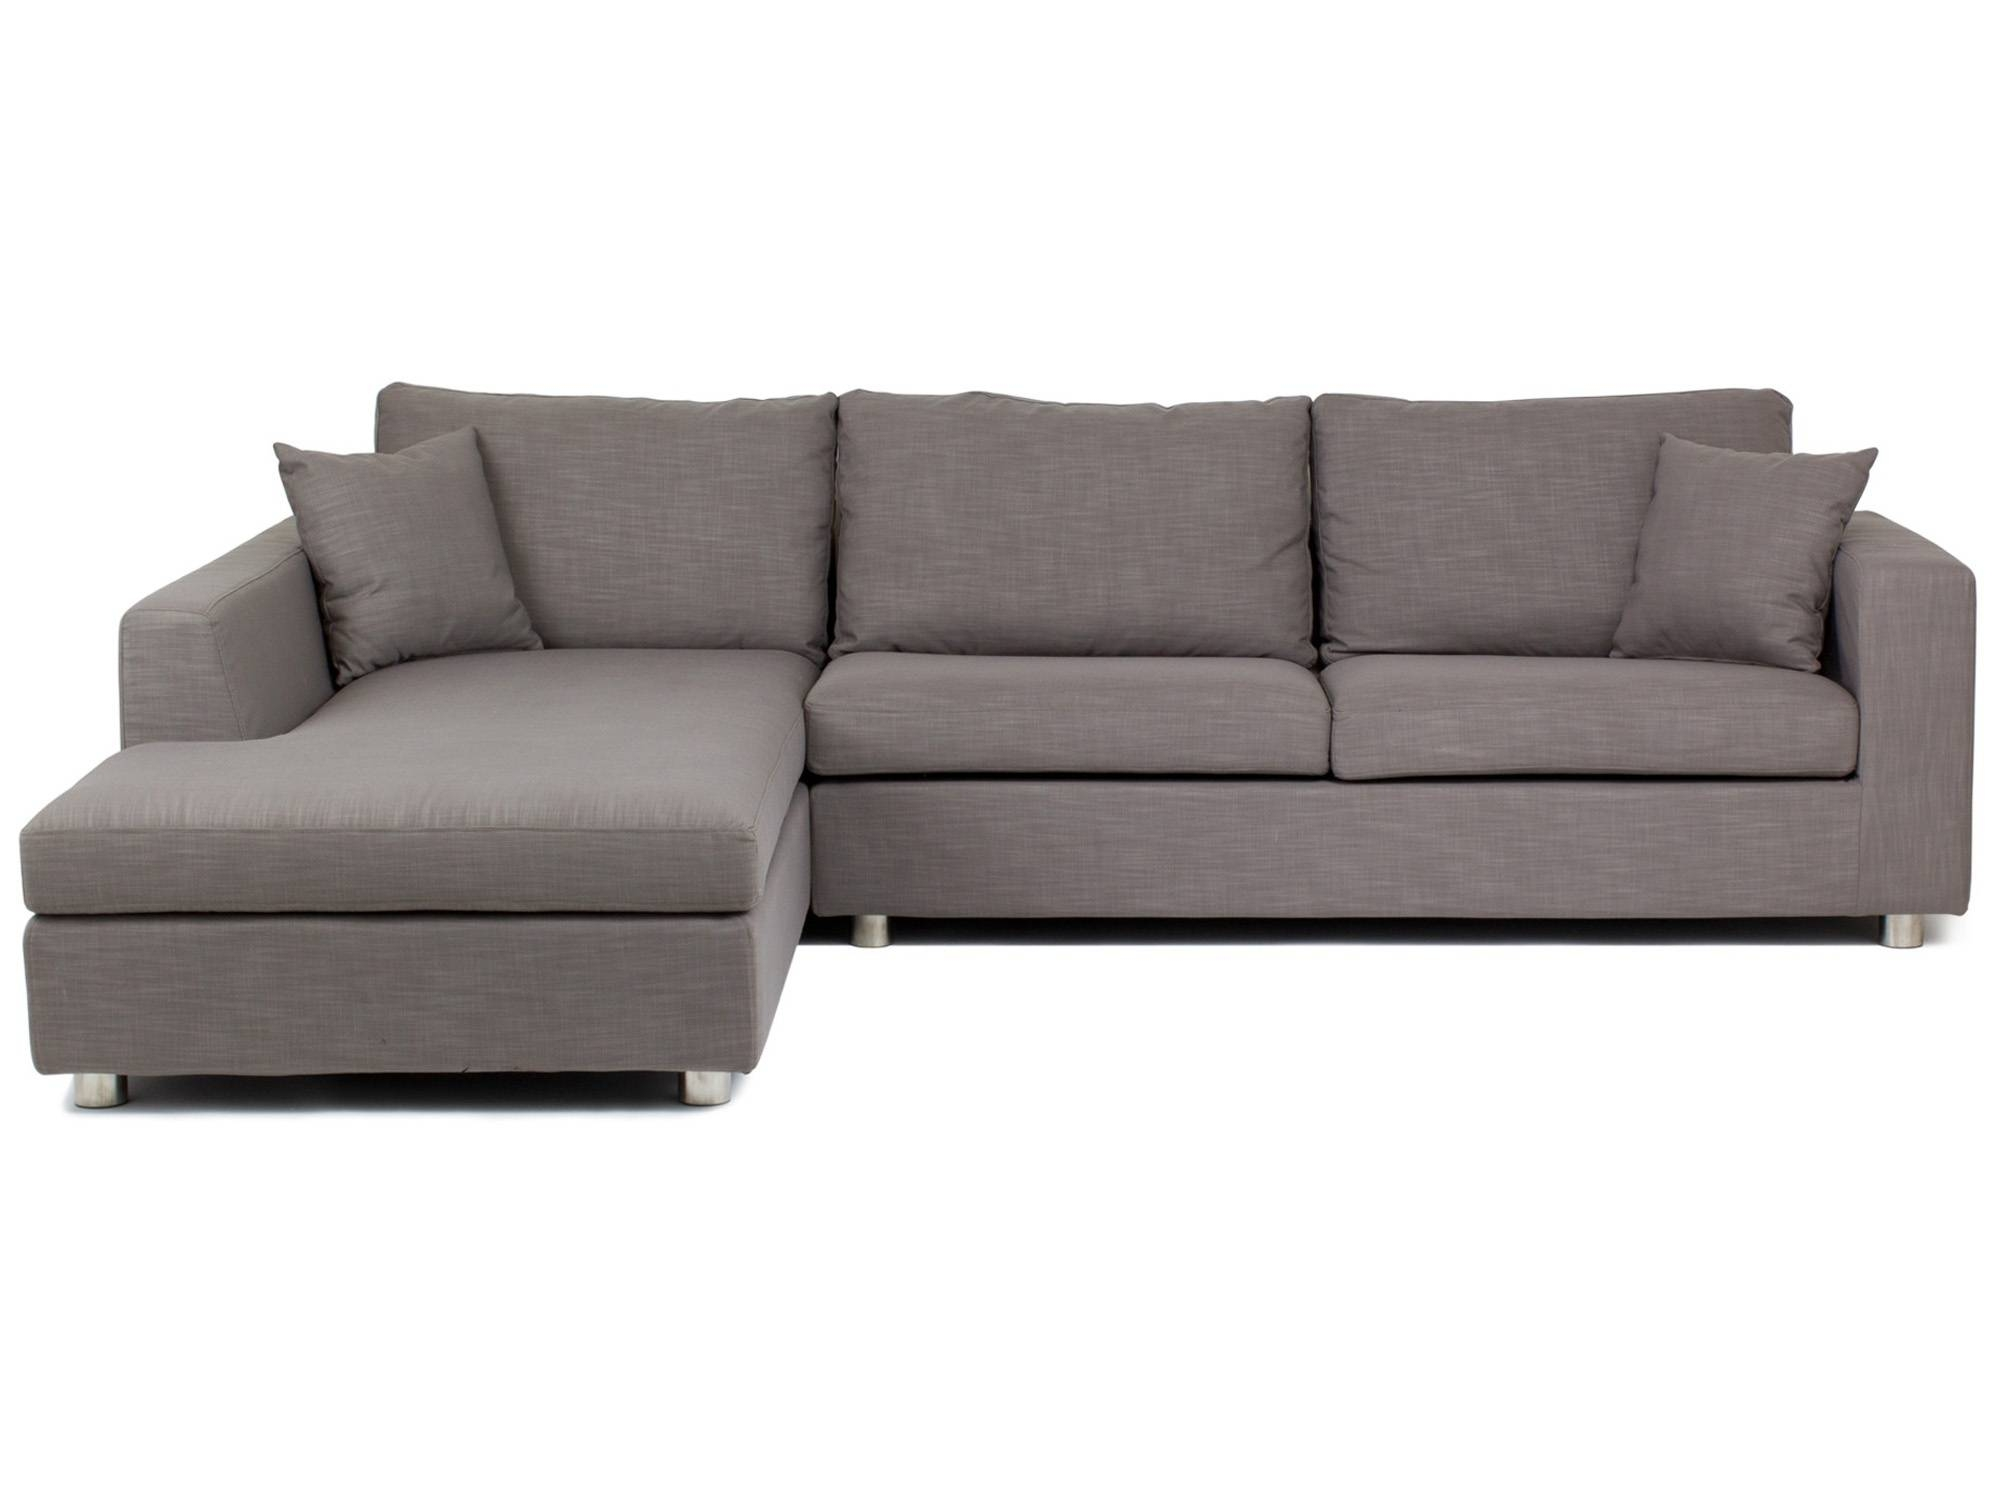 Corner Chaise Lounge Sofa Bed - Revistapacheco for Sofa Beds With Chaise Lounge (Image 2 of 15)